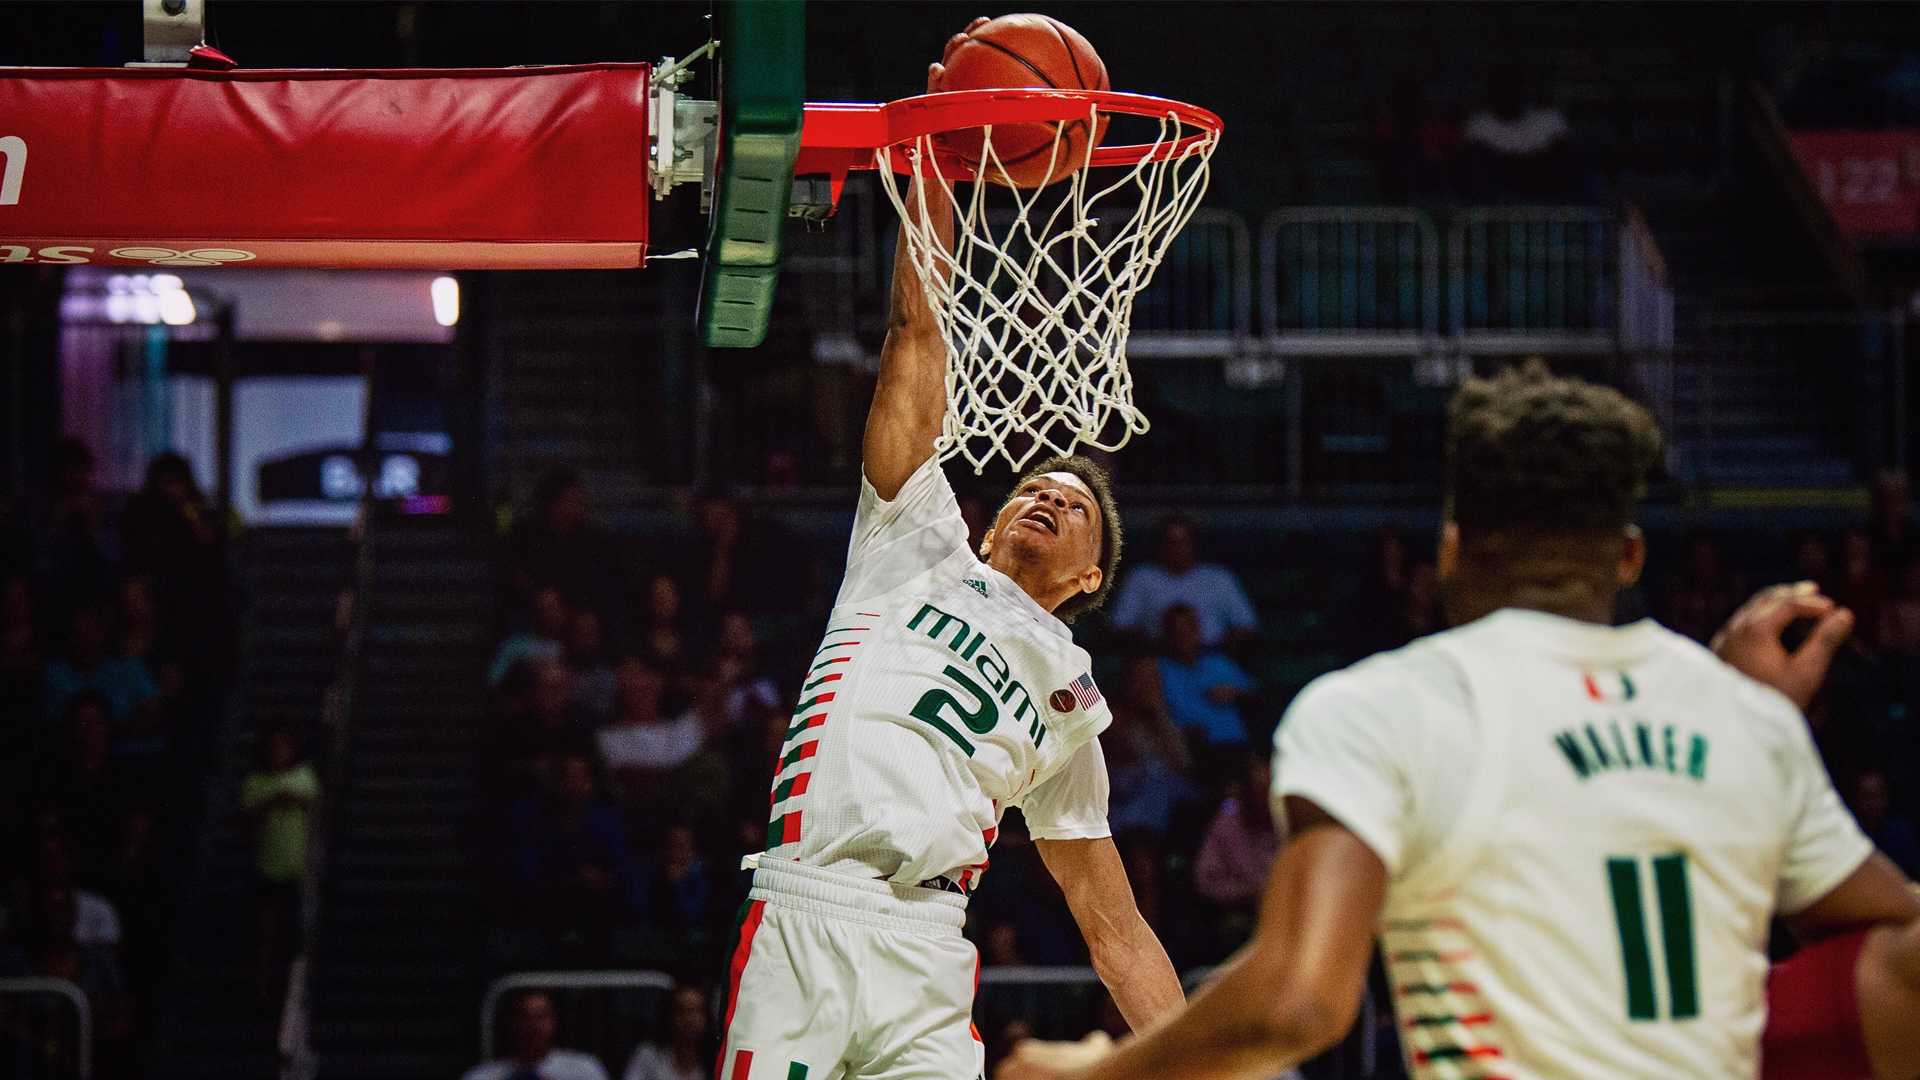 MBB Rolls to 85-58 Win over Boston College